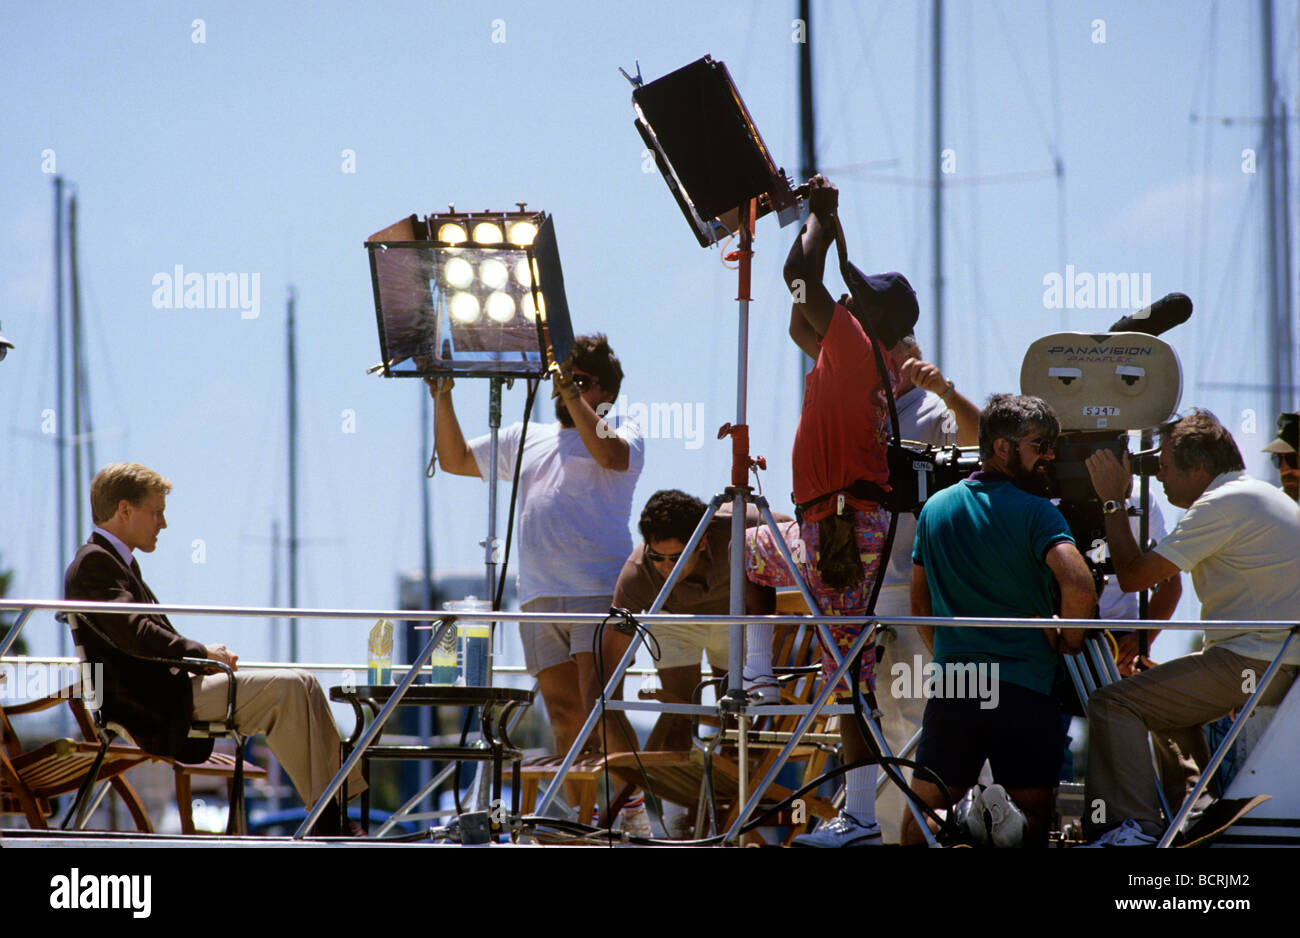 film production crew lighting a scene - Stock Image & Film Production Crew Lighting Scene Stock Photos u0026 Film Production ...